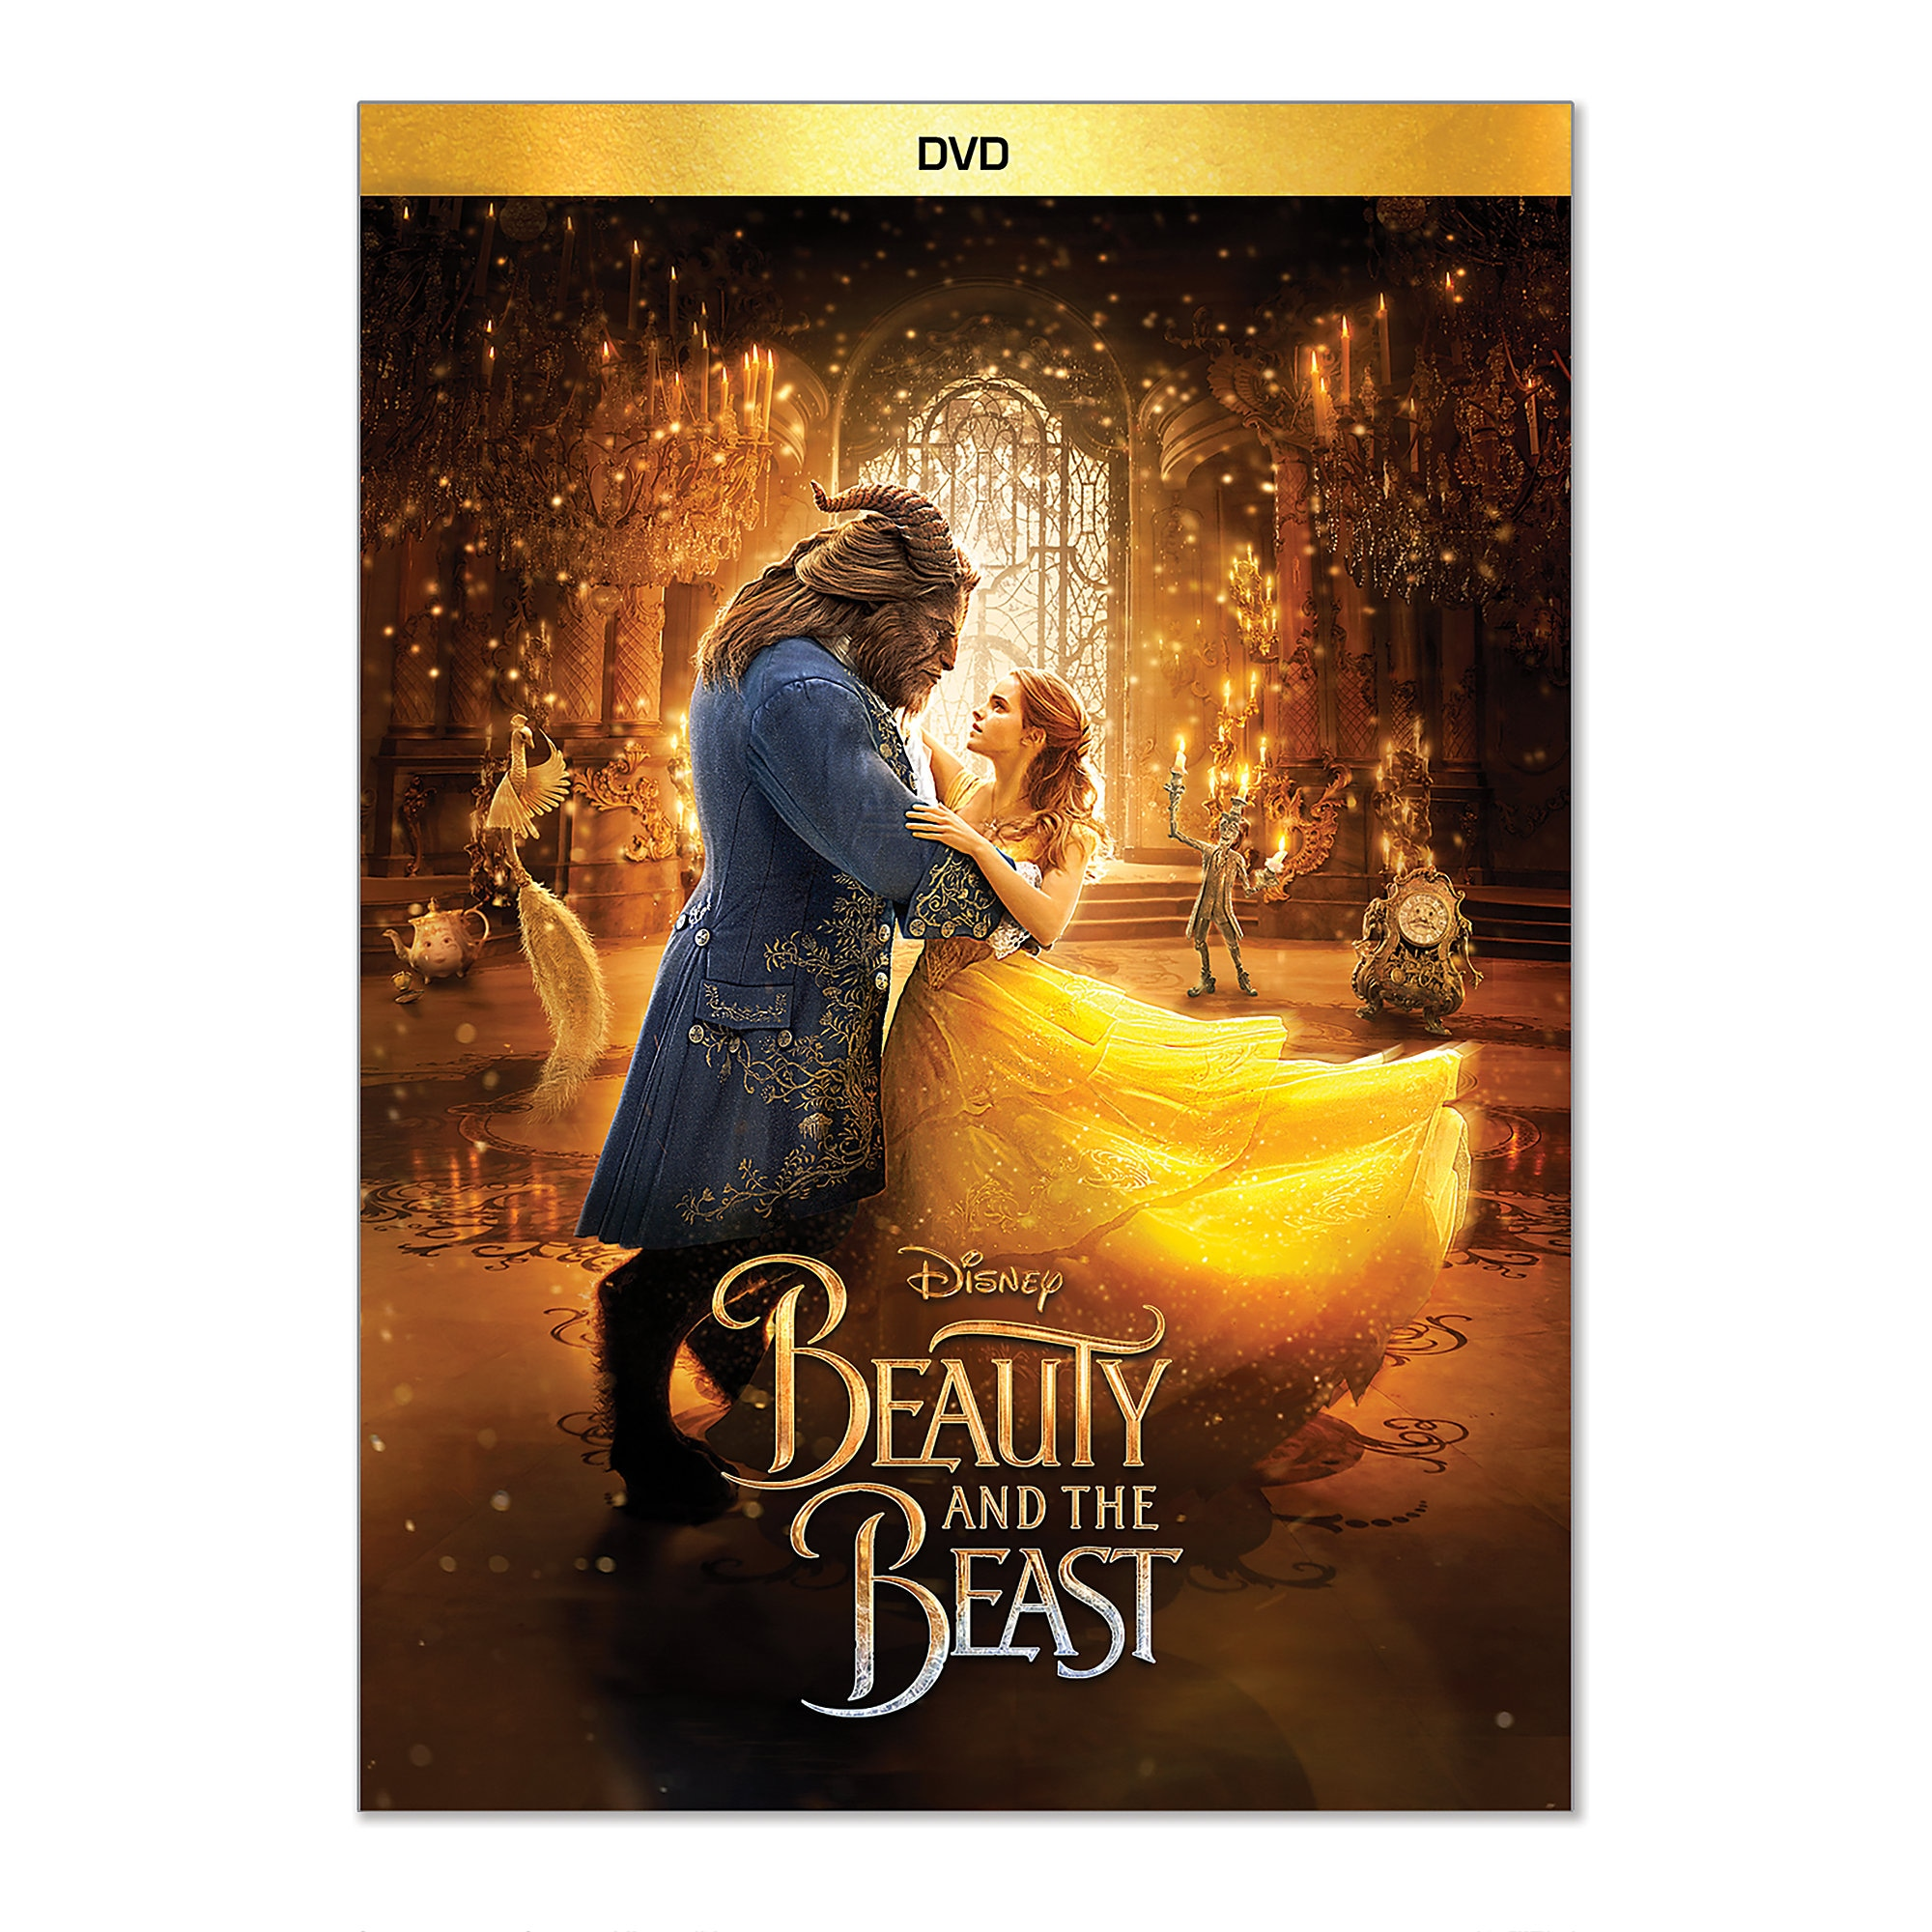 Beauty and the Beast - Live Action Film - DVD